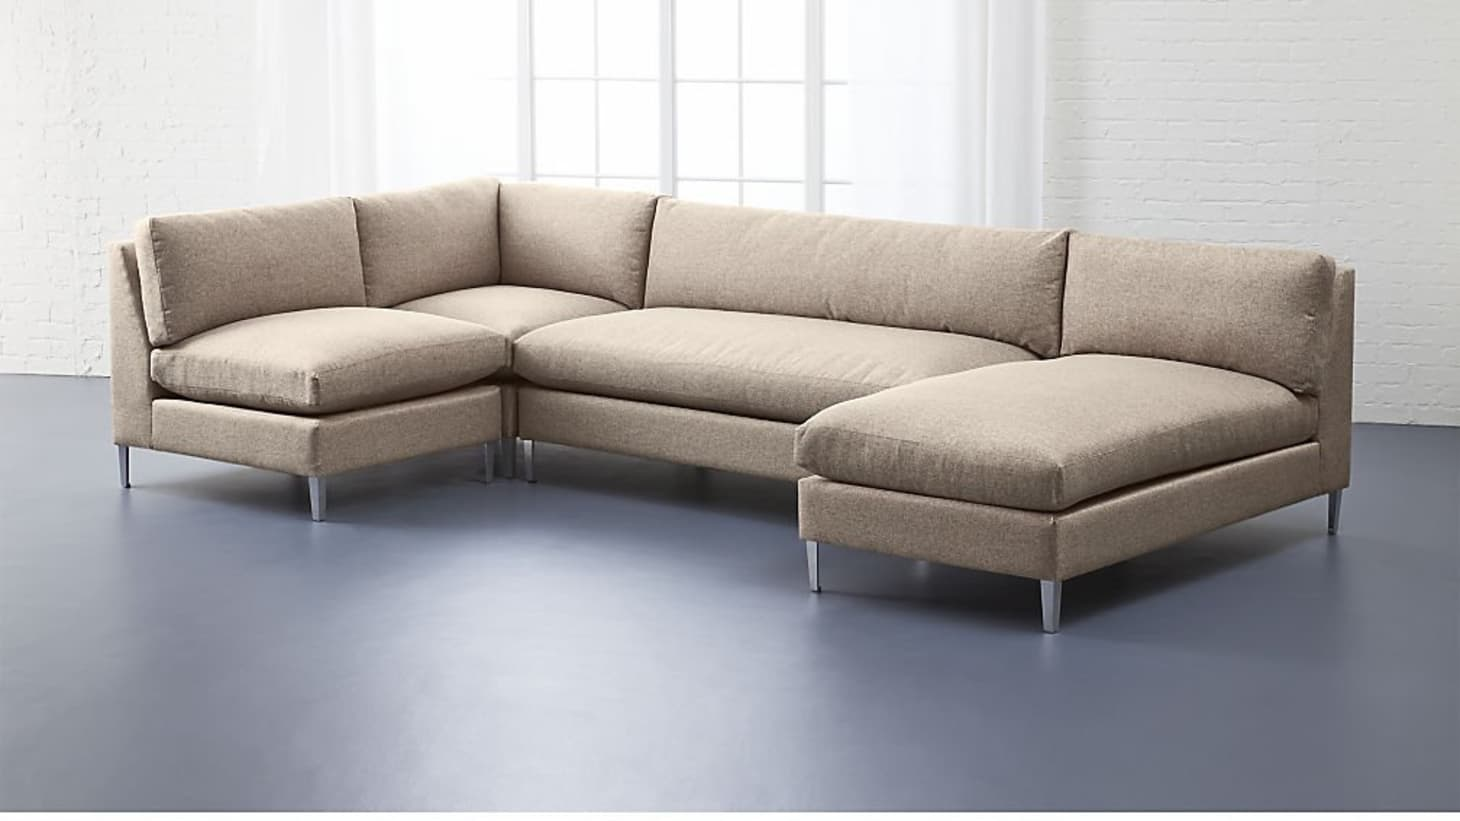 Sensational Expandable Modular Best Sectional Sofas Apartment Therapy Camellatalisay Diy Chair Ideas Camellatalisaycom